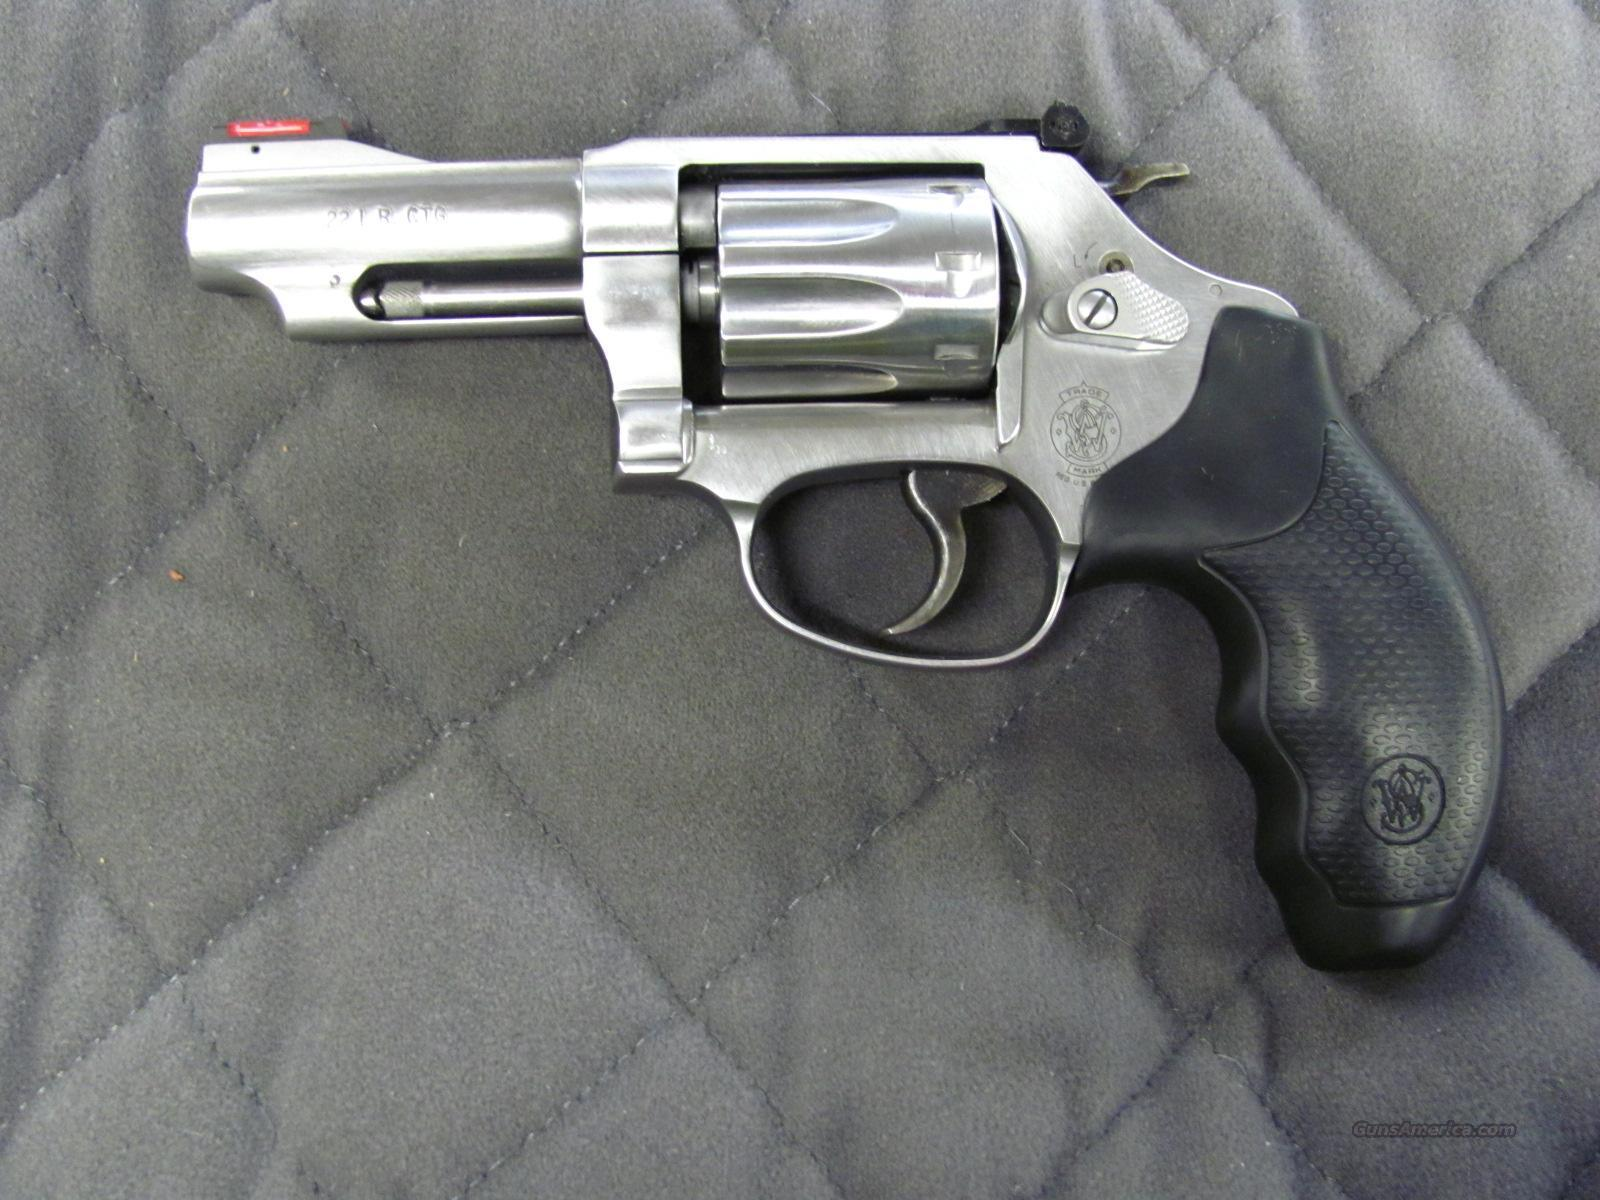 Smith & Wesson Model 63 22 Long Rifle  **NEW** 162634  Guns > Pistols > Smith & Wesson Revolvers > Pocket Pistols